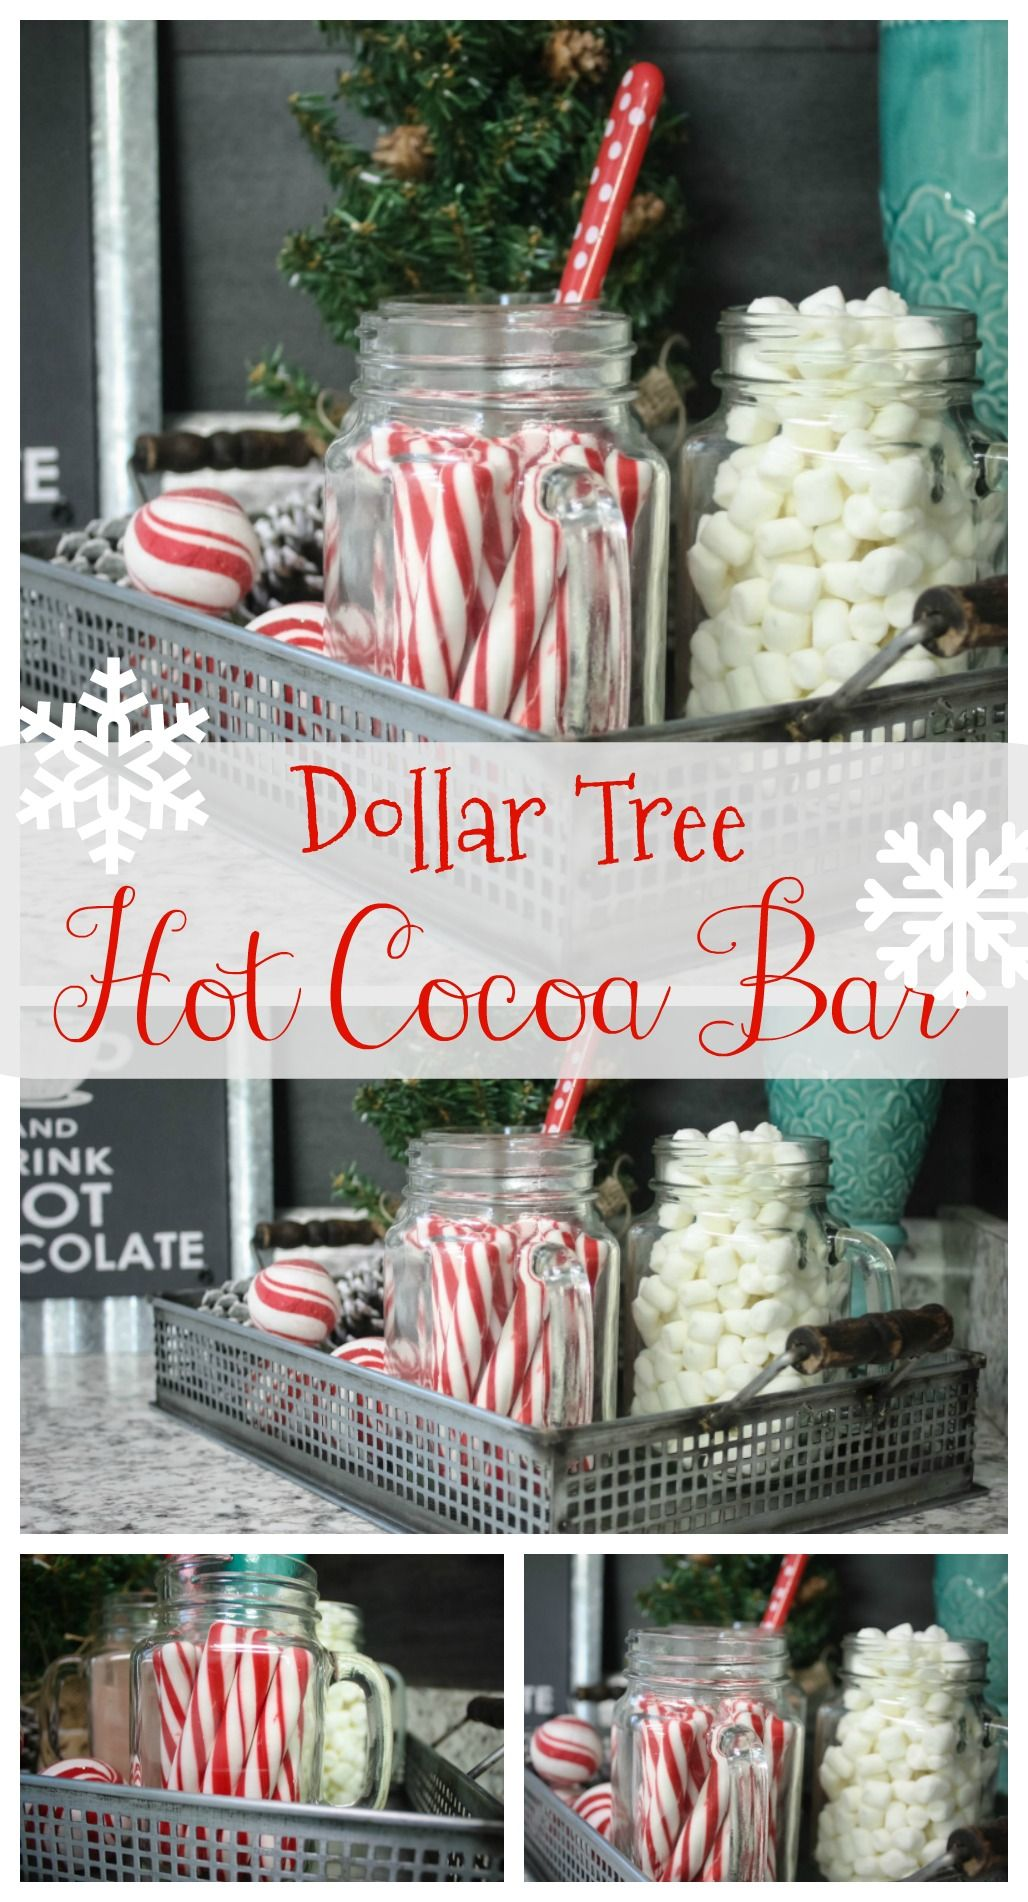 Dollar Tree Hot Cocoa Bar | Cheap checks, Hot cocoa bar and Cocoa bar